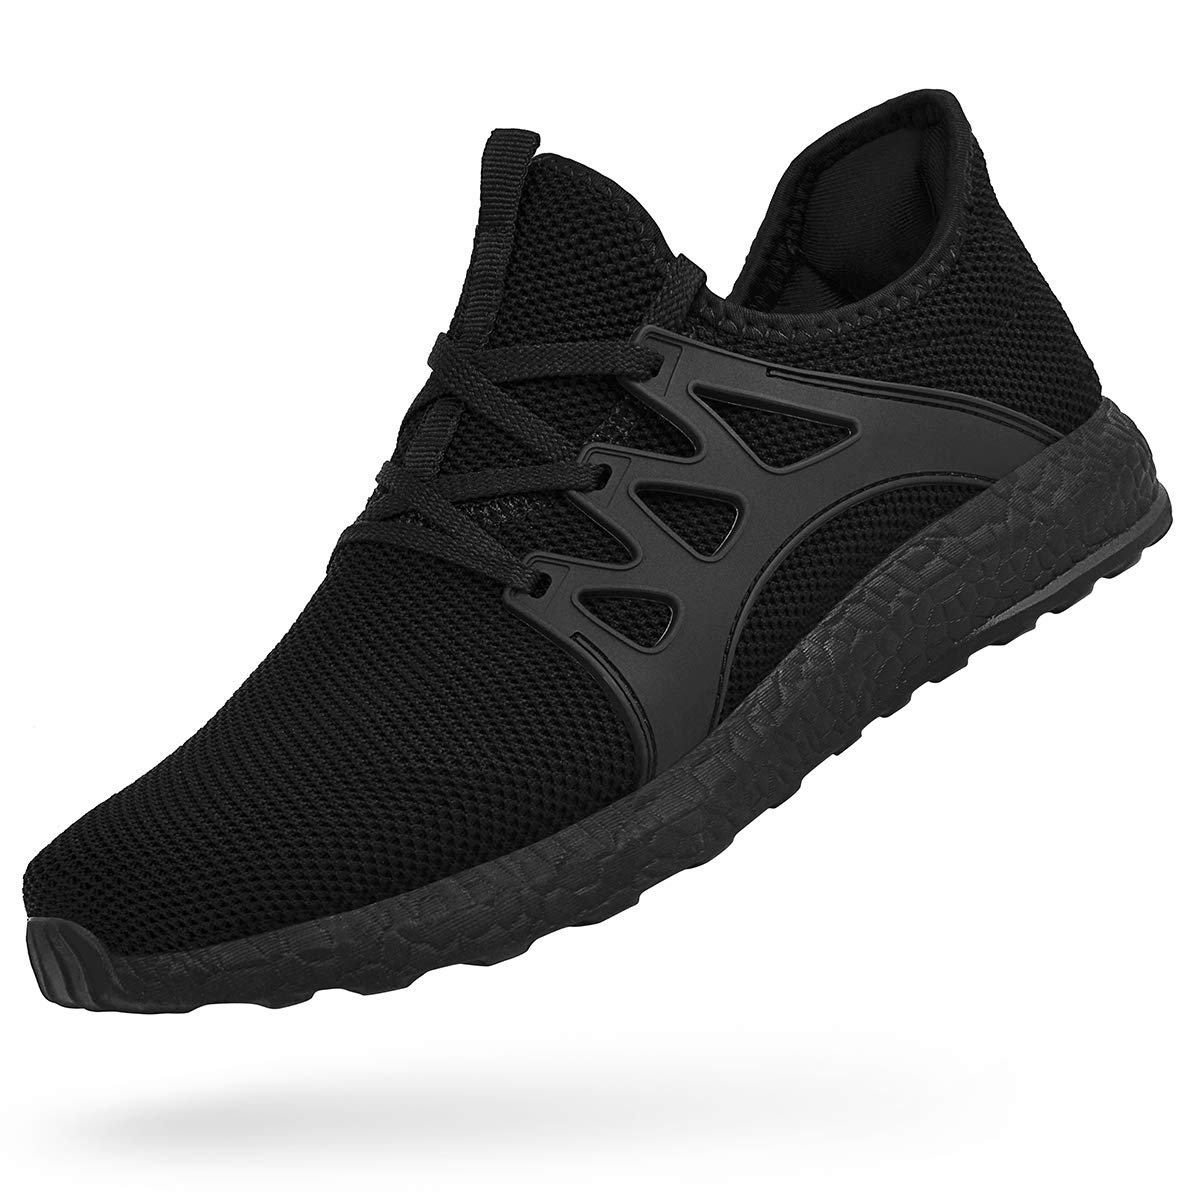 Feetmat Mens Black Tennis Shoes Non Slip Gym Running Sneakers Slip On Knit Mesh Athletic Workout Fashion Shoes Black 11.5